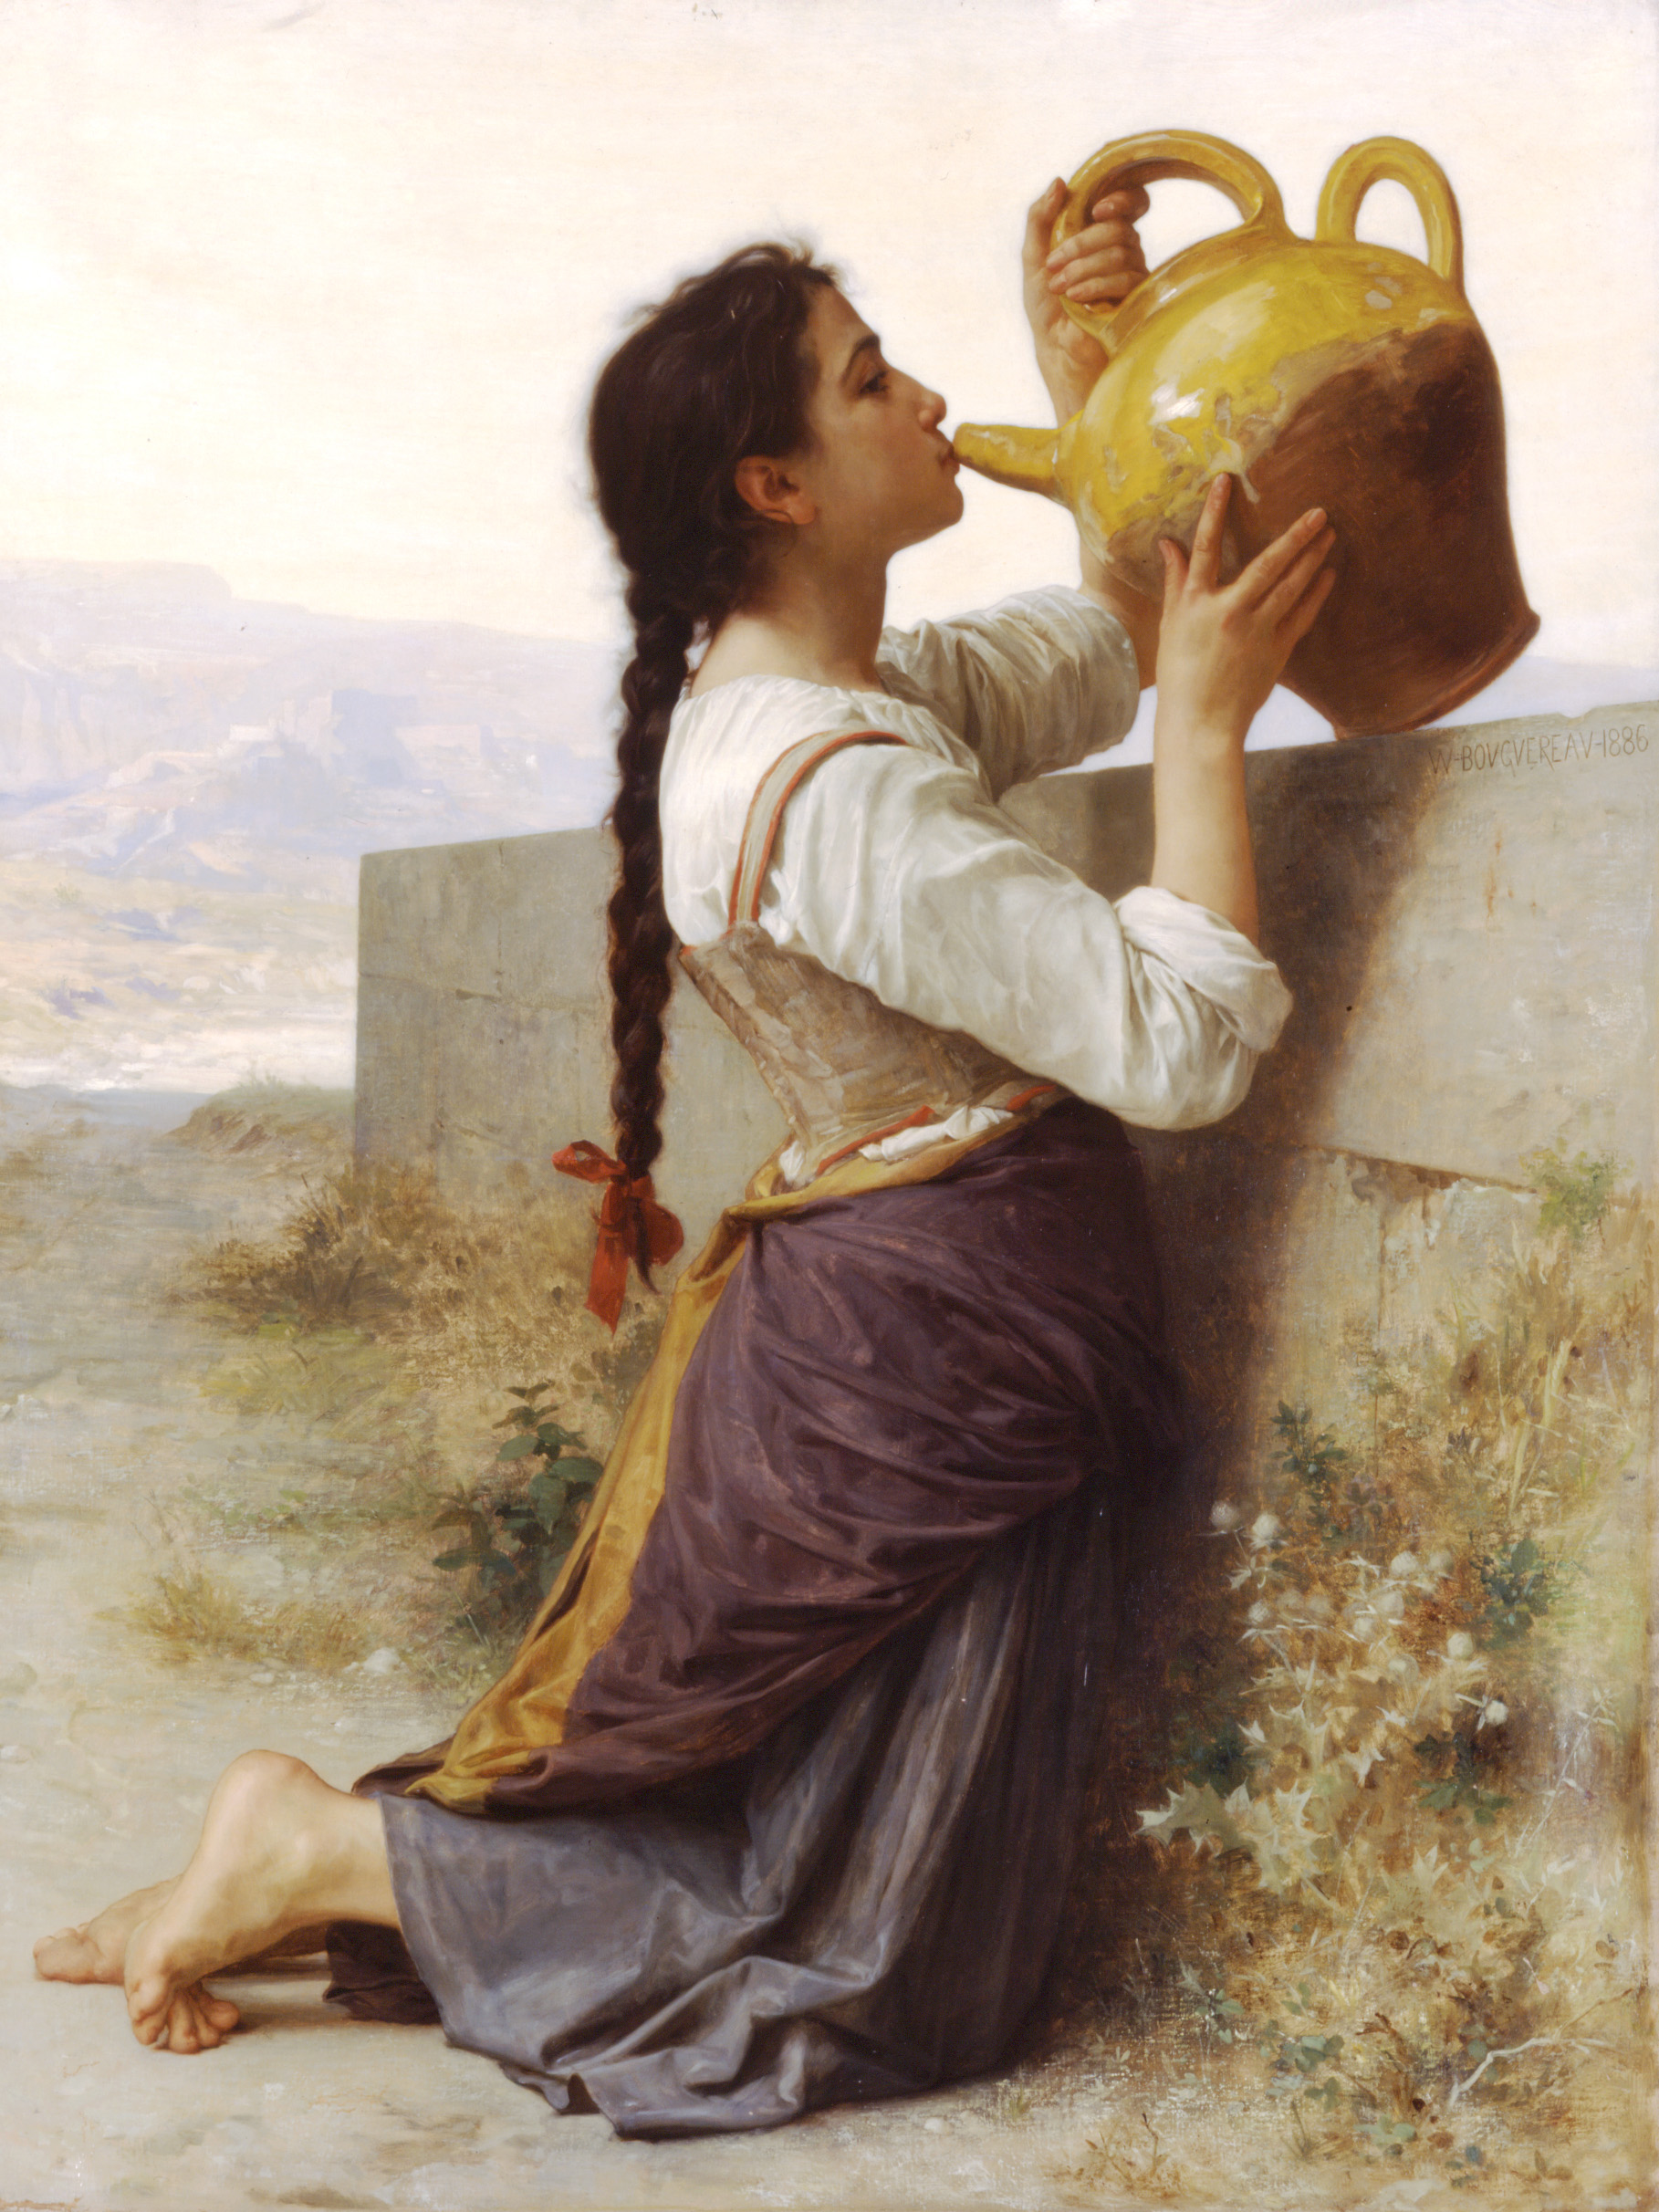 http://upload.wikimedia.org/wikipedia/commons/e/e0/William-Adolphe_Bouguereau_(1825-1905)_-_Thirst_(1886).jpg